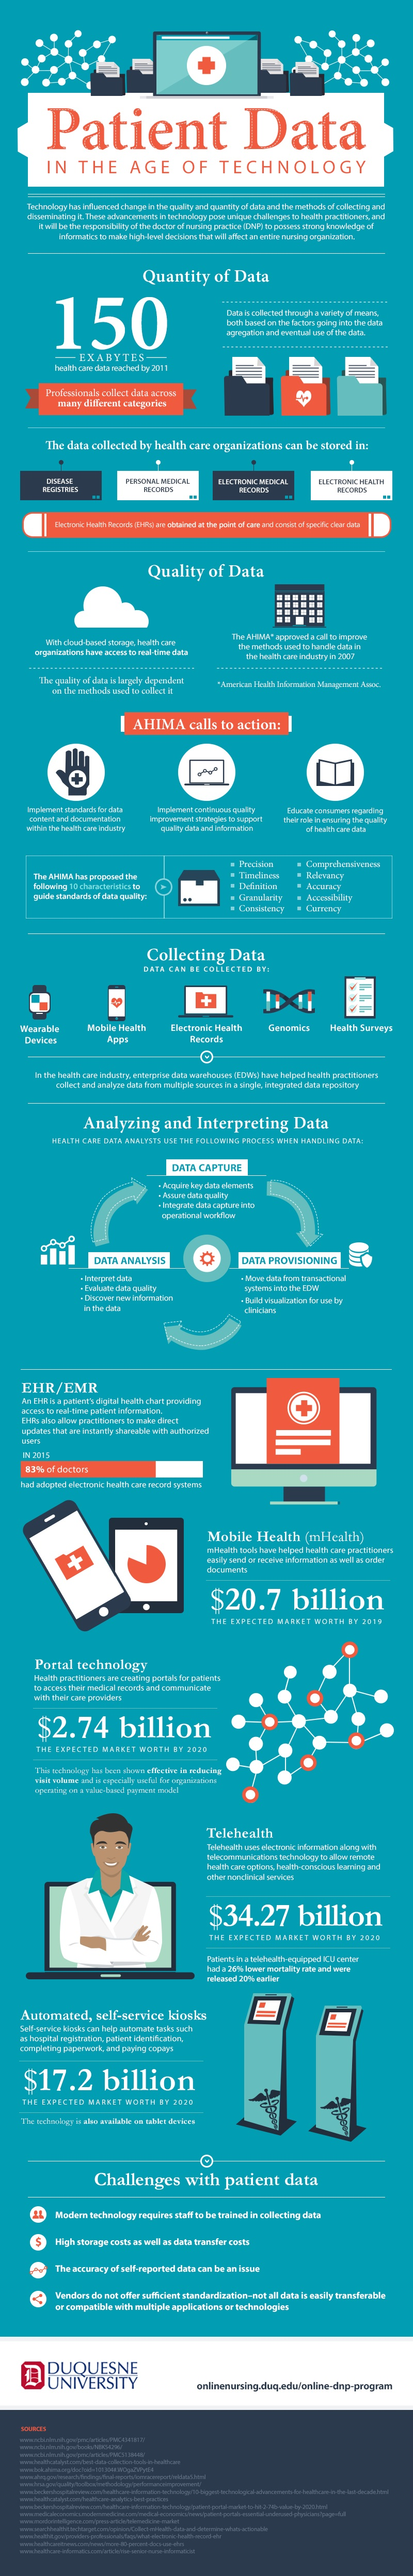 nursing patient data infographic